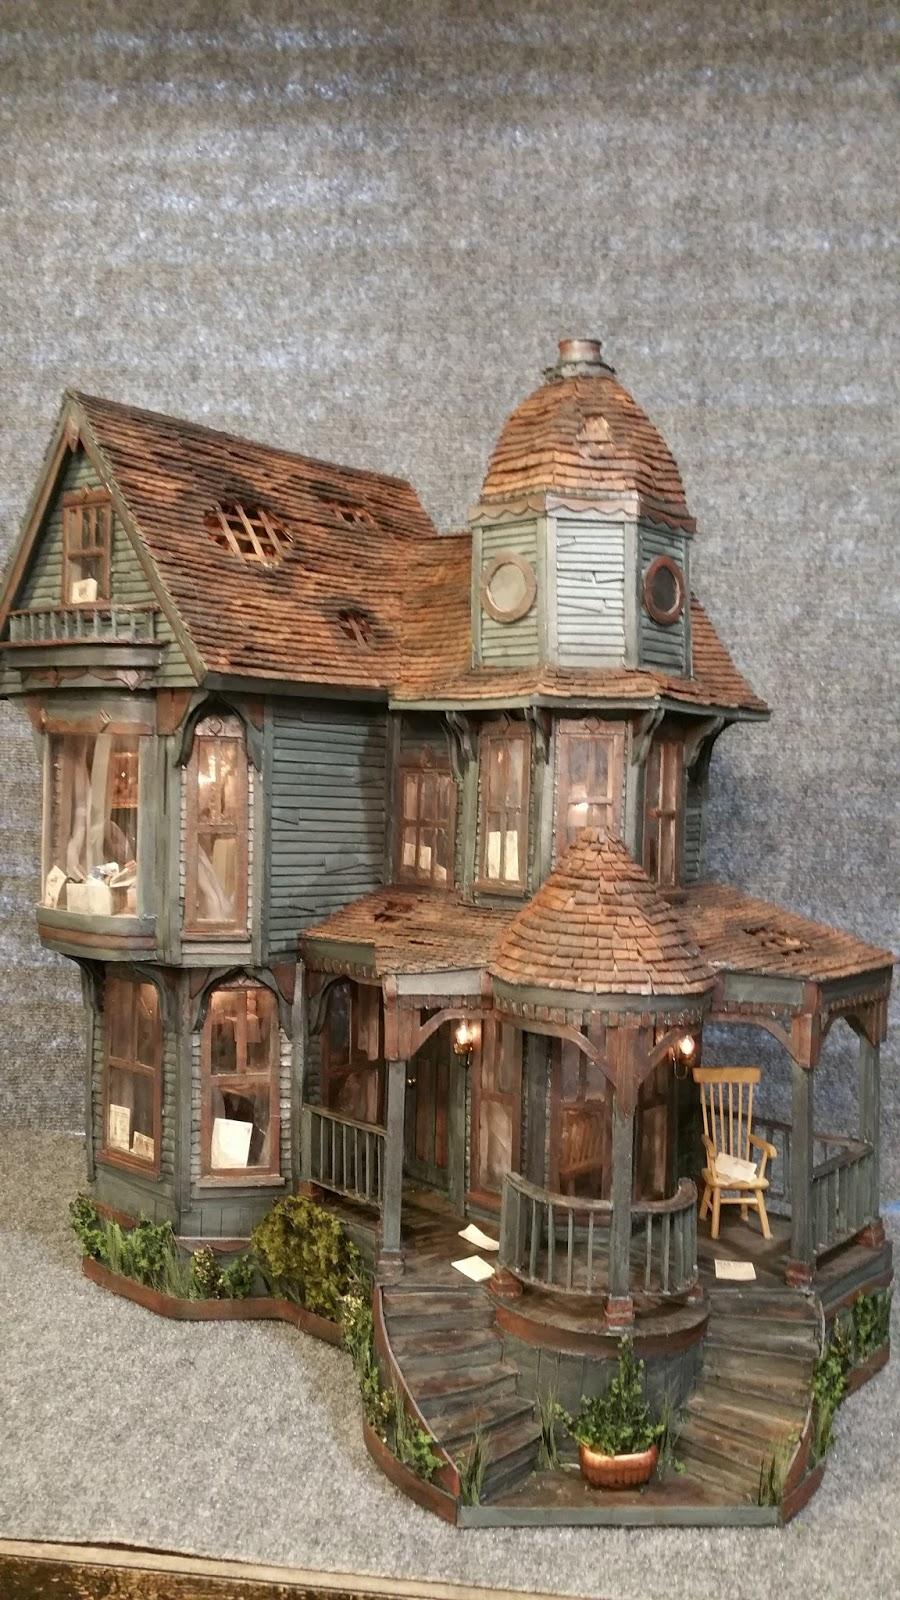 Greggs Miniature Imaginations Haunted Mansion made out of Cardboard